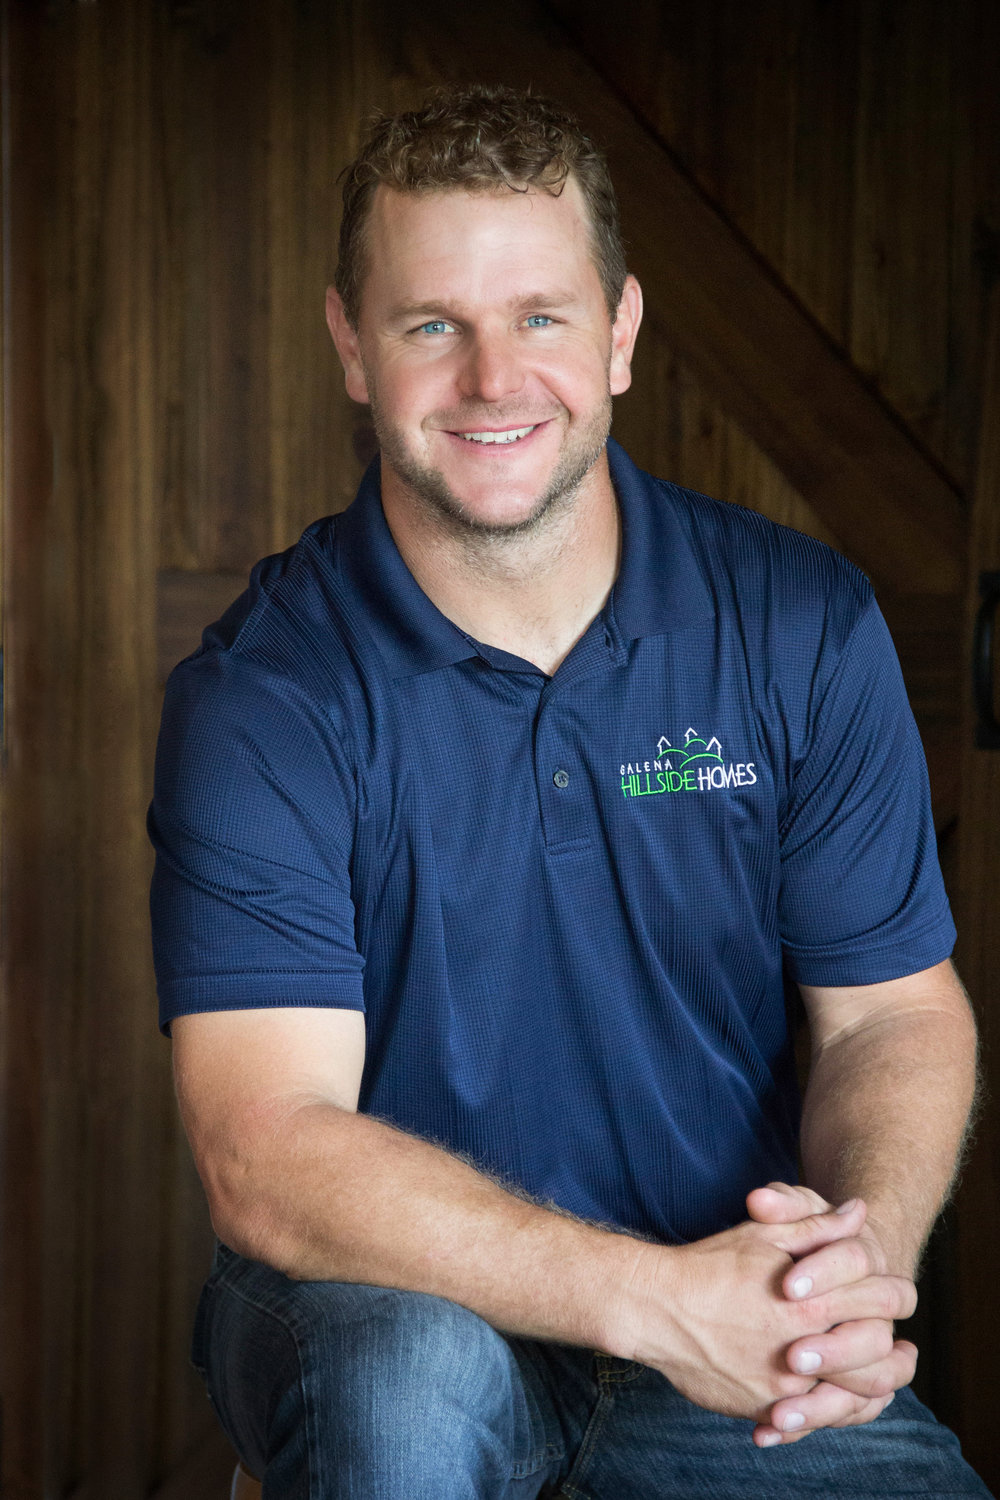 Nate Droessler - Nate has over 20 years of experience in home building working in the Chicago, SW Wisconsin, and Galena and Galena Territory areas. Nate Droessler specializes in custom built homes, additions, and remodeling. The goal of Galena Hillside Homes is to have very pleased and happy customers at the end of every project. Homeowners really are the best references, visit our testimonials page or give us a call today to obtain a list of past clients.At Galena Hillside Homes we believe in building your dreams.  Reach out today to find out how we can work together on your